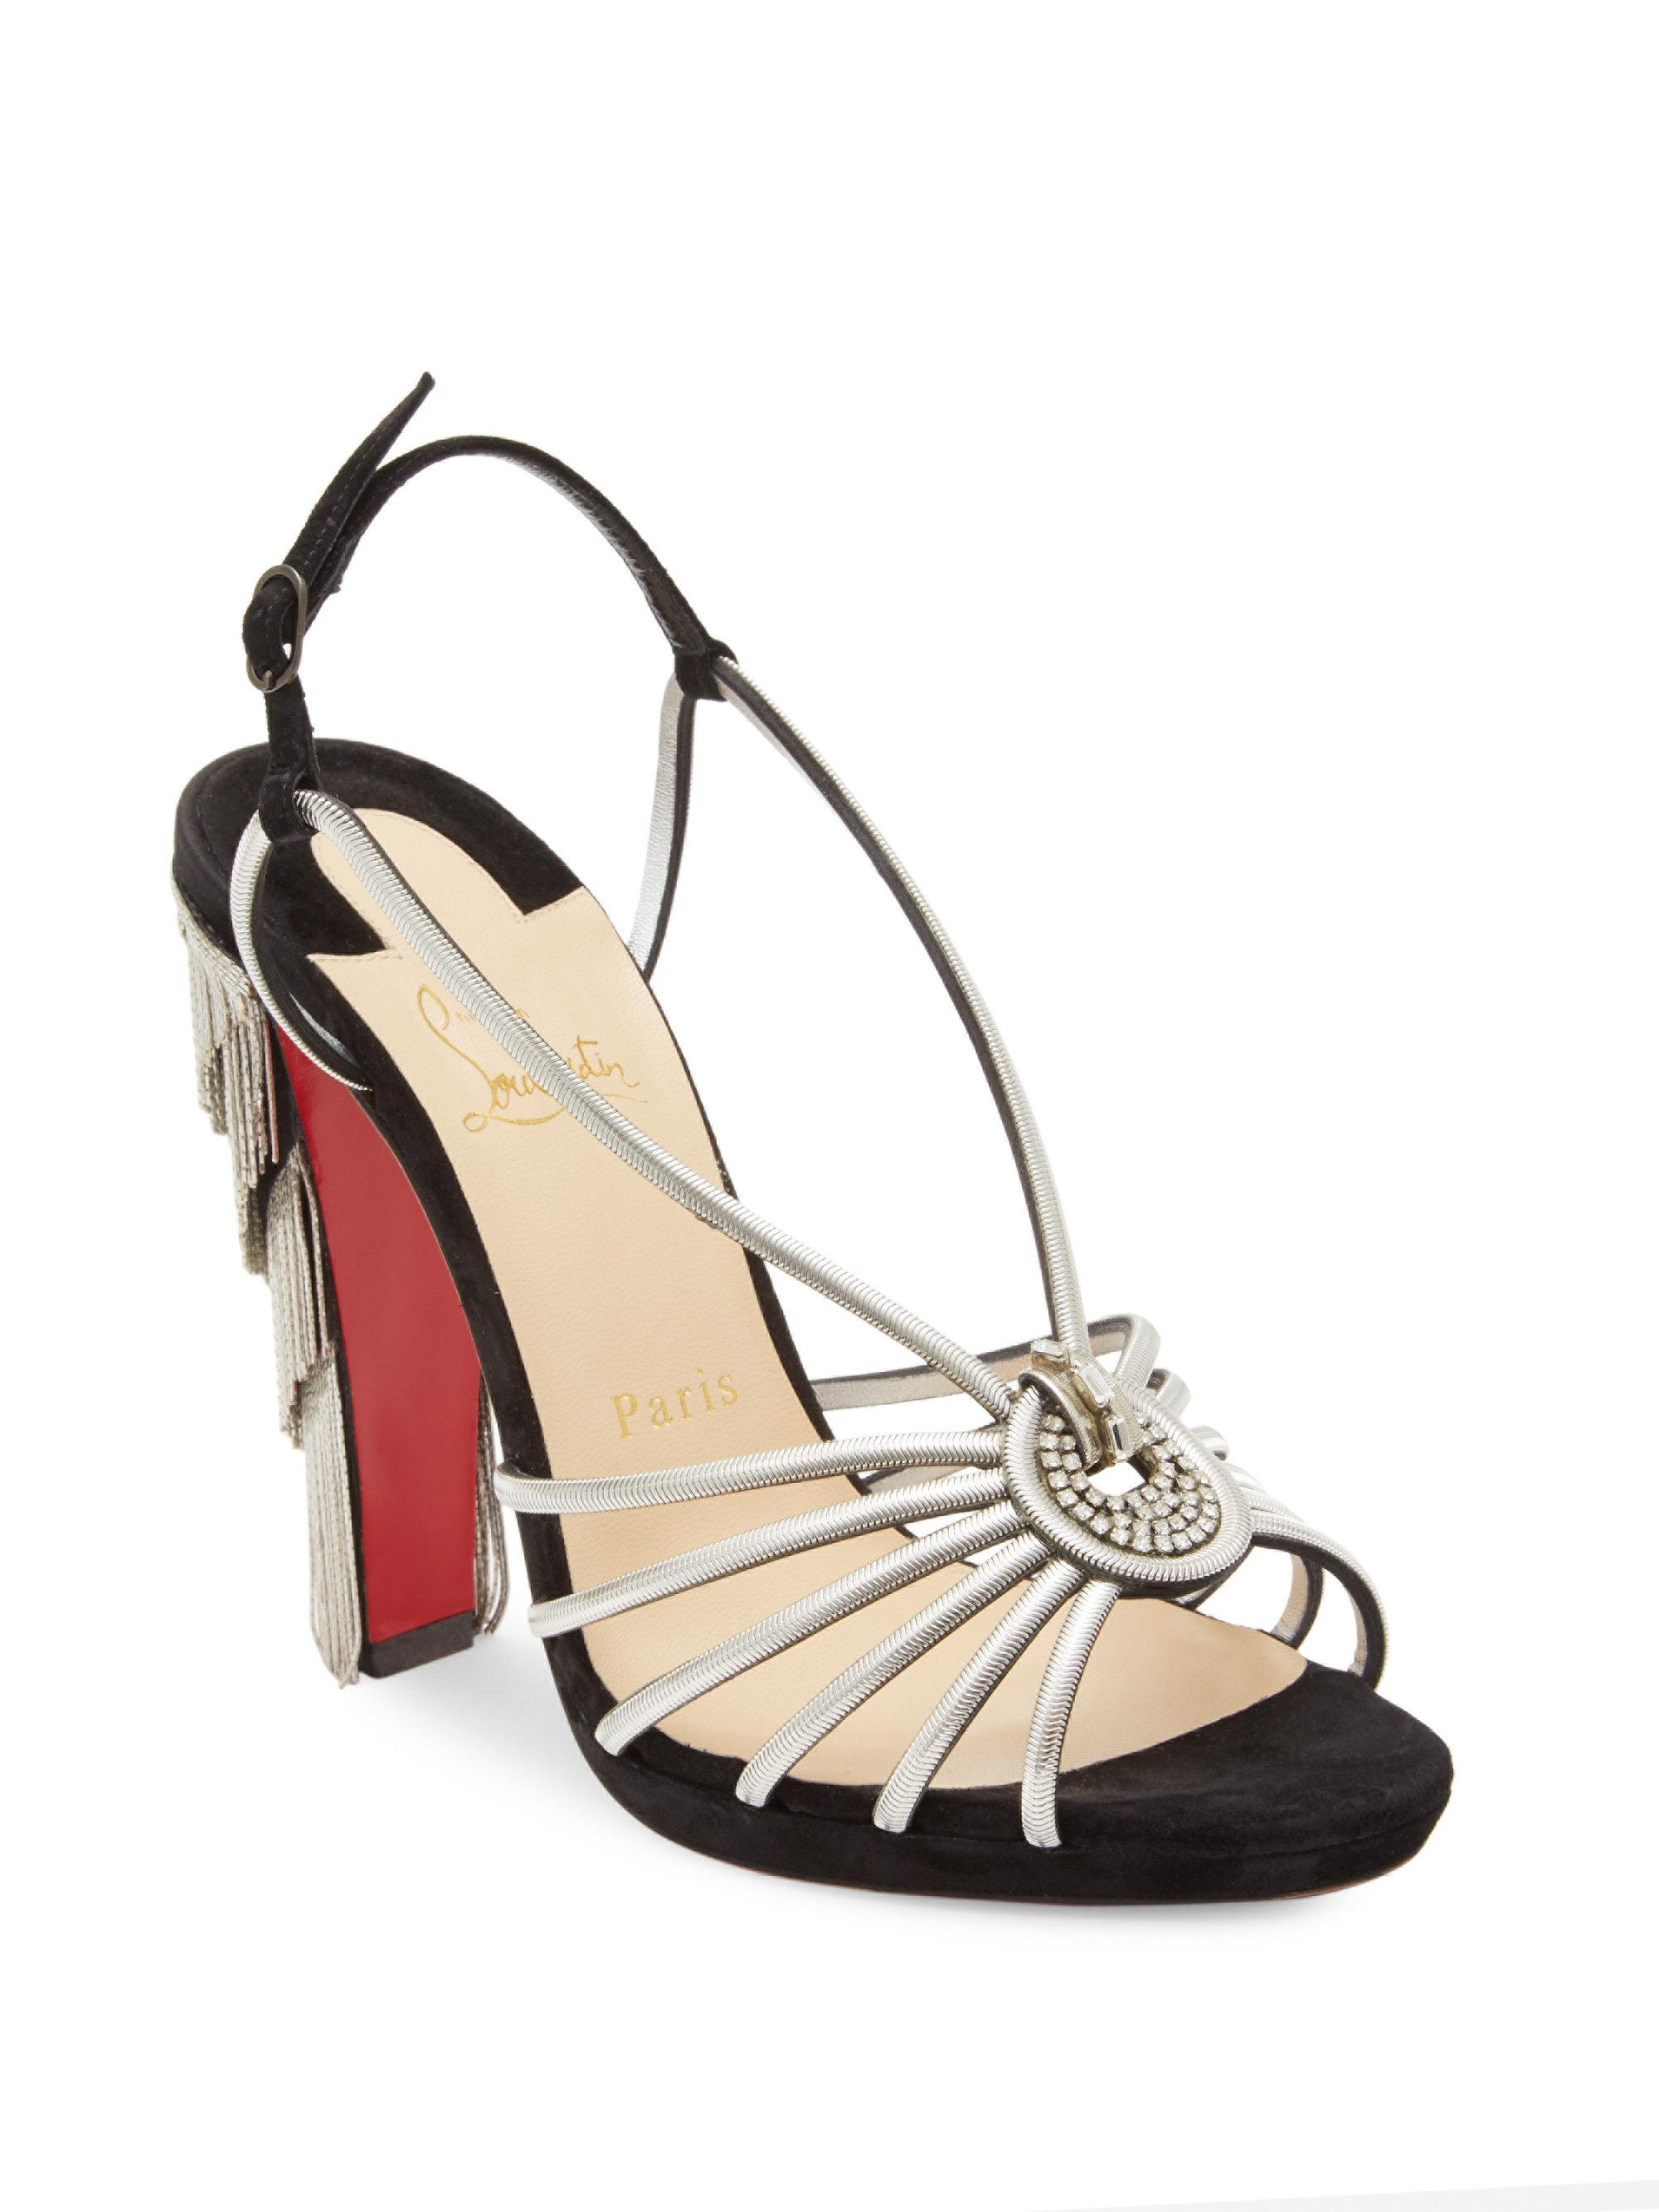 buy cheap fast delivery wide range of Christian Louboutin Snakeskin Cage Sandals 100% guaranteed free shipping sale online cheap sale geniue stockist nzzc3E